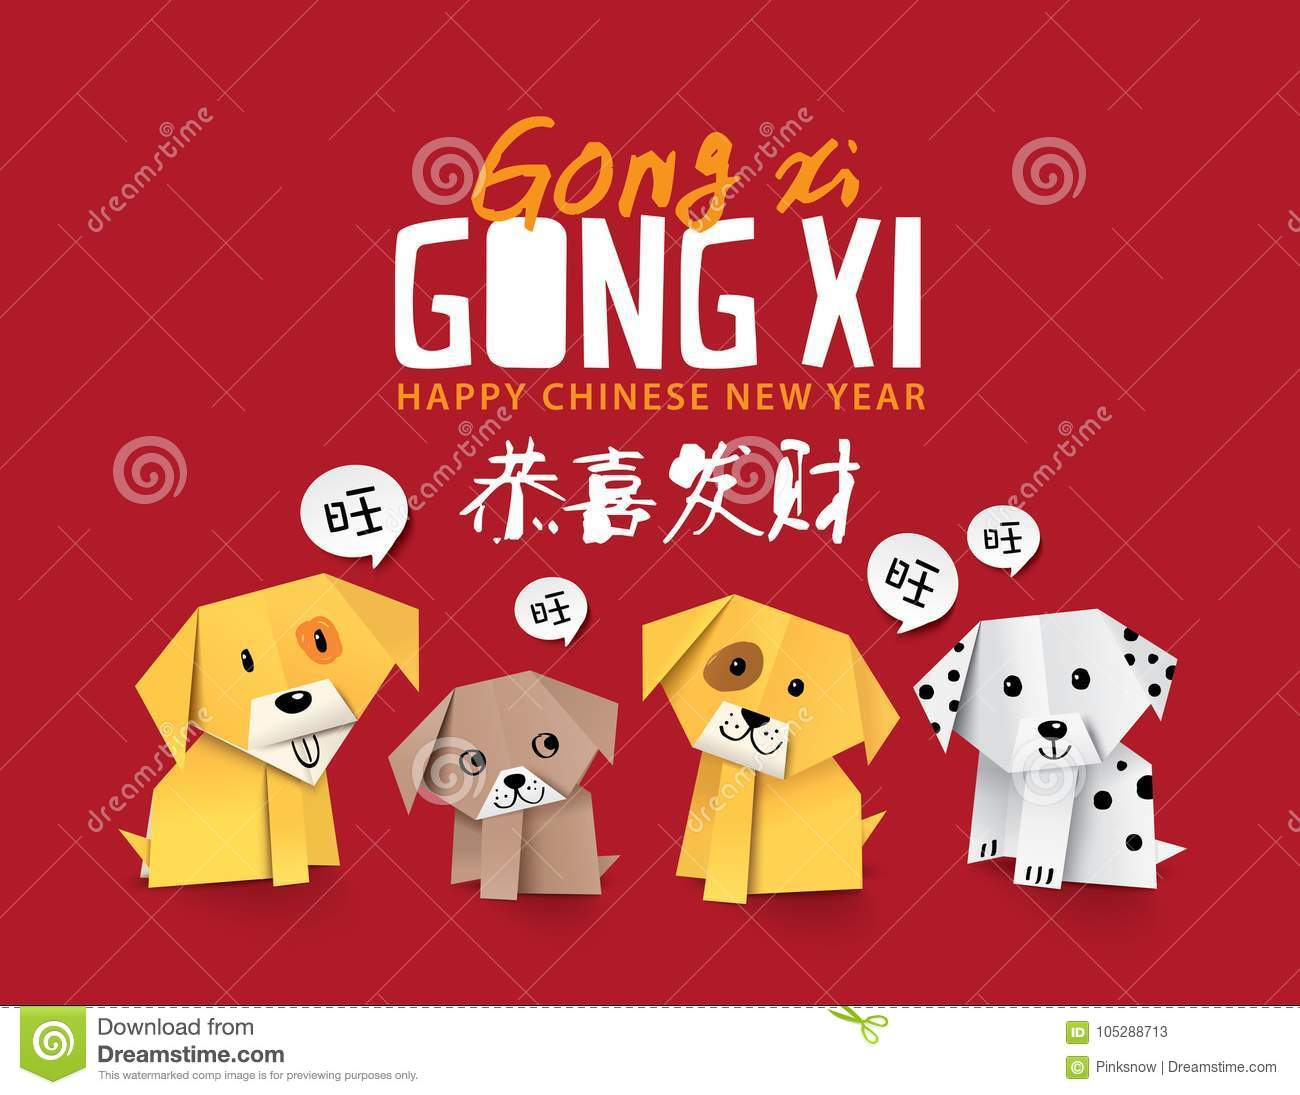 2018 chinese new year greeting card design with origami dogs stock download 2018 chinese new year greeting card design with origami dogs stock vector illustration m4hsunfo